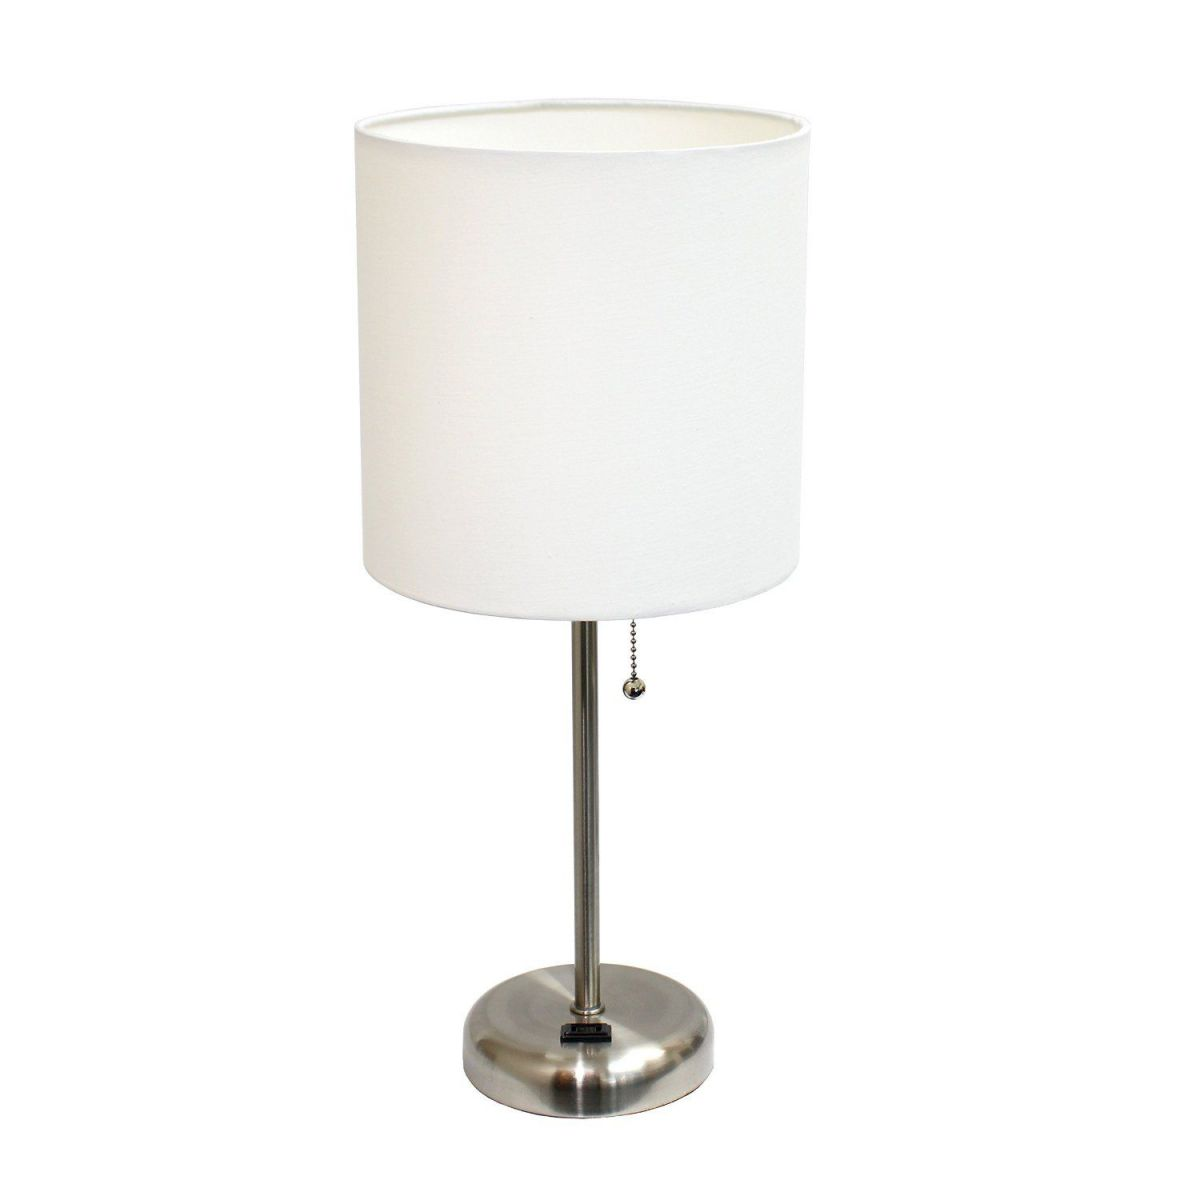 Limelights LT2024-WHT Stick Lamp with Charging Outlet and Fabric Shade